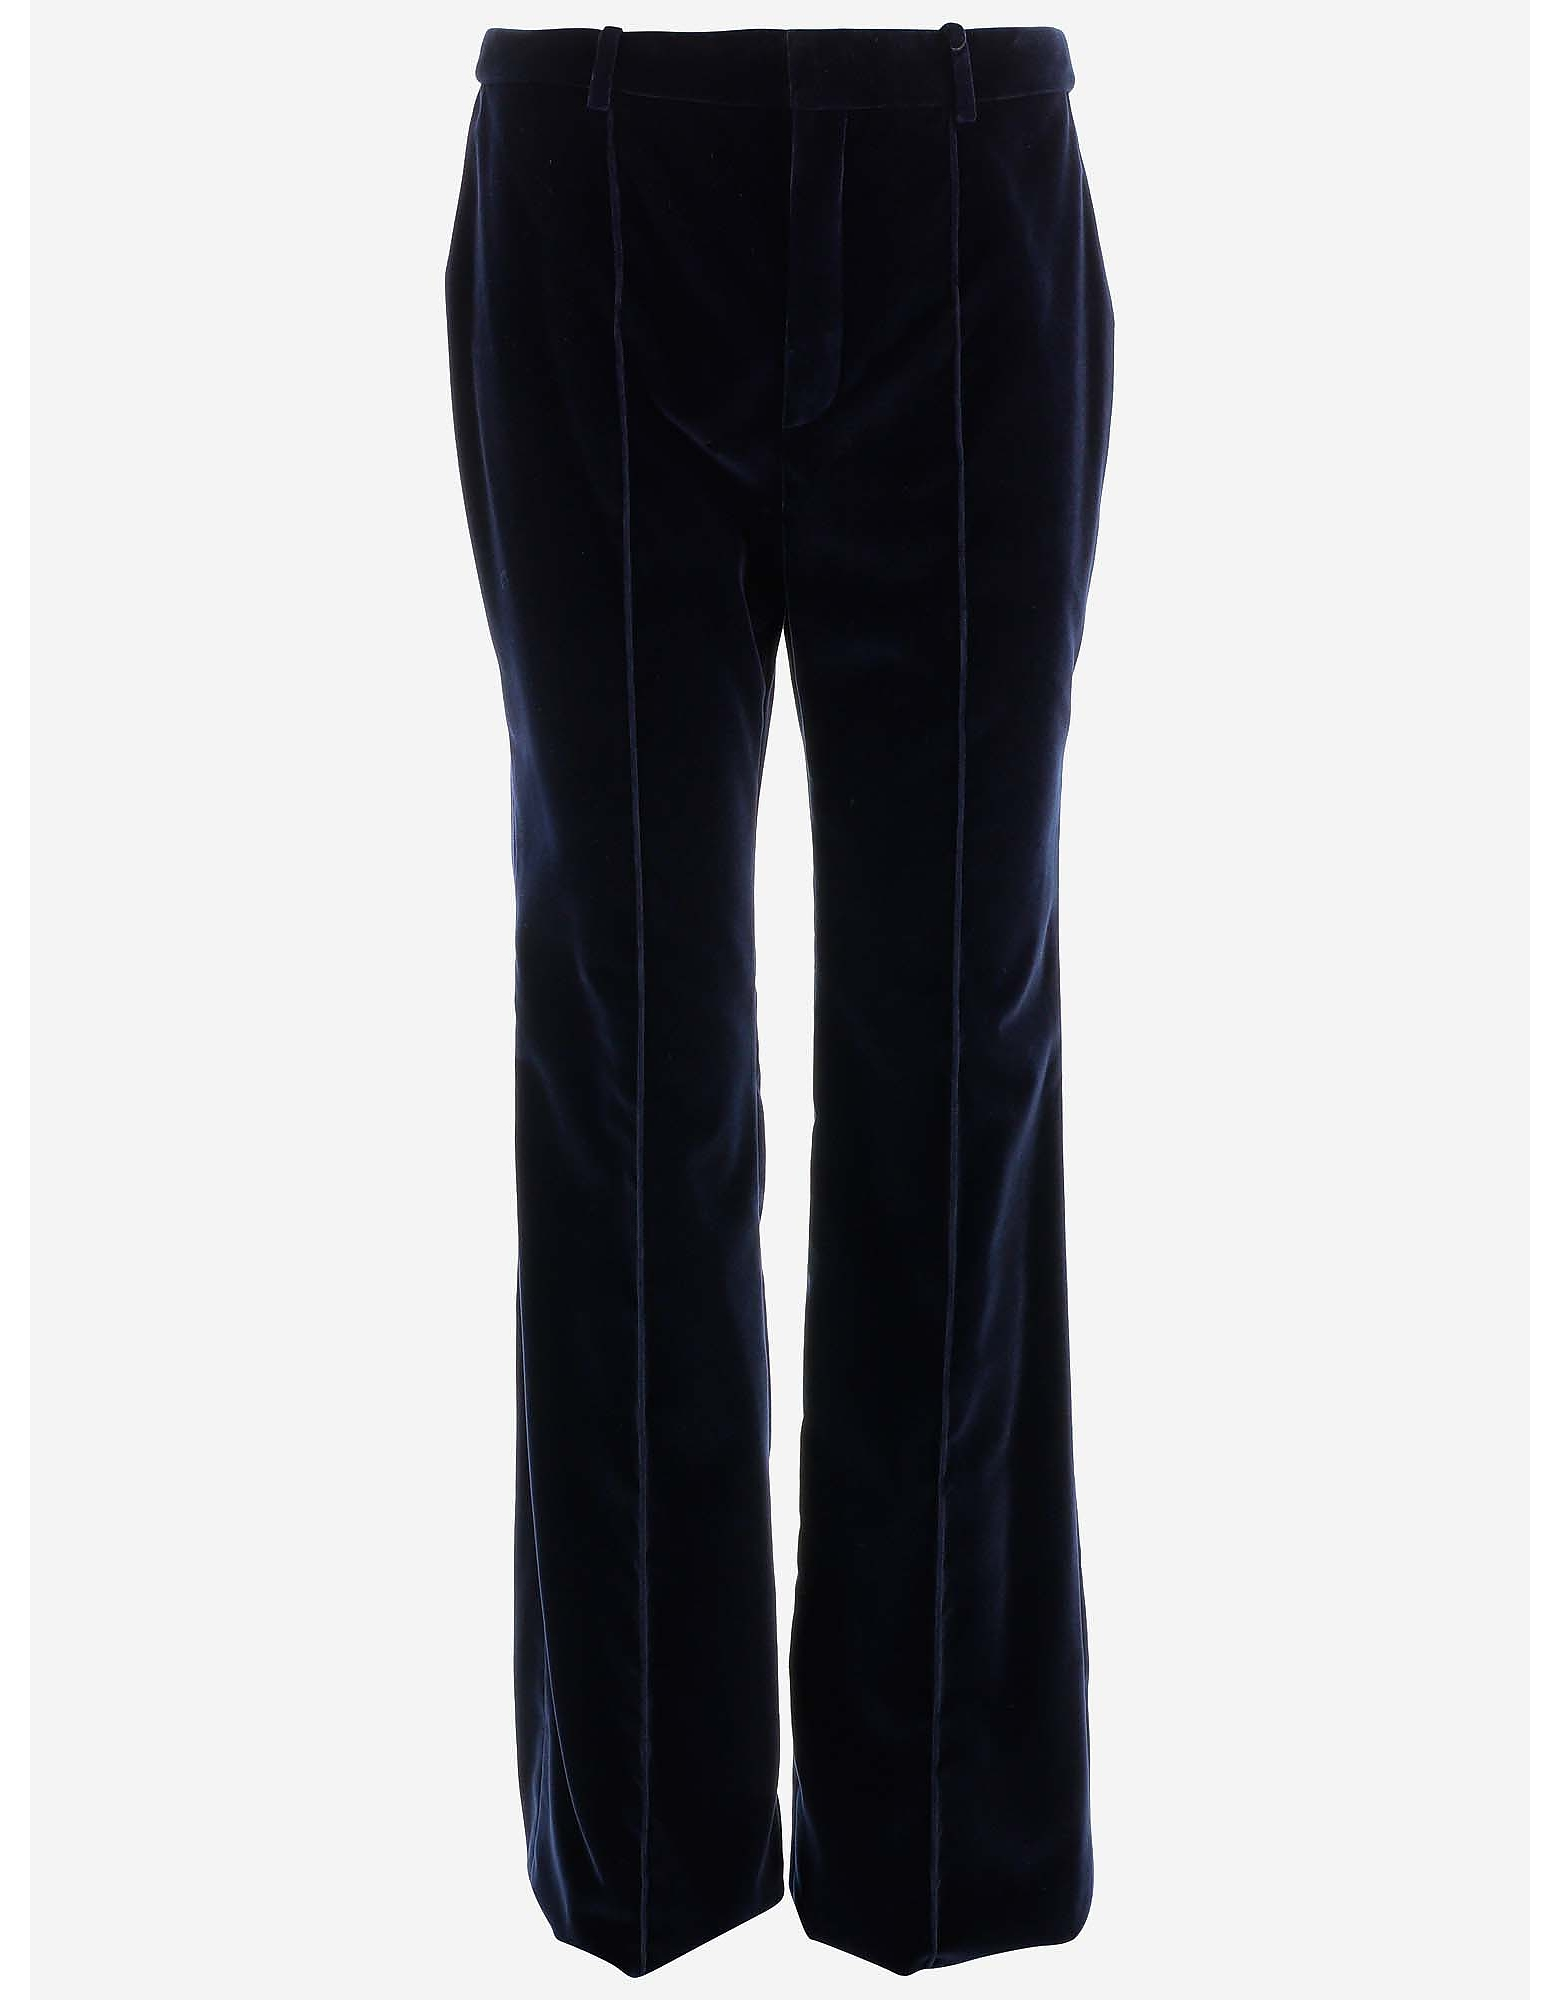 Yves Saint Laurent 伊夫圣罗兰 Pants, Deep Blue Velvet Women's Flare Pants